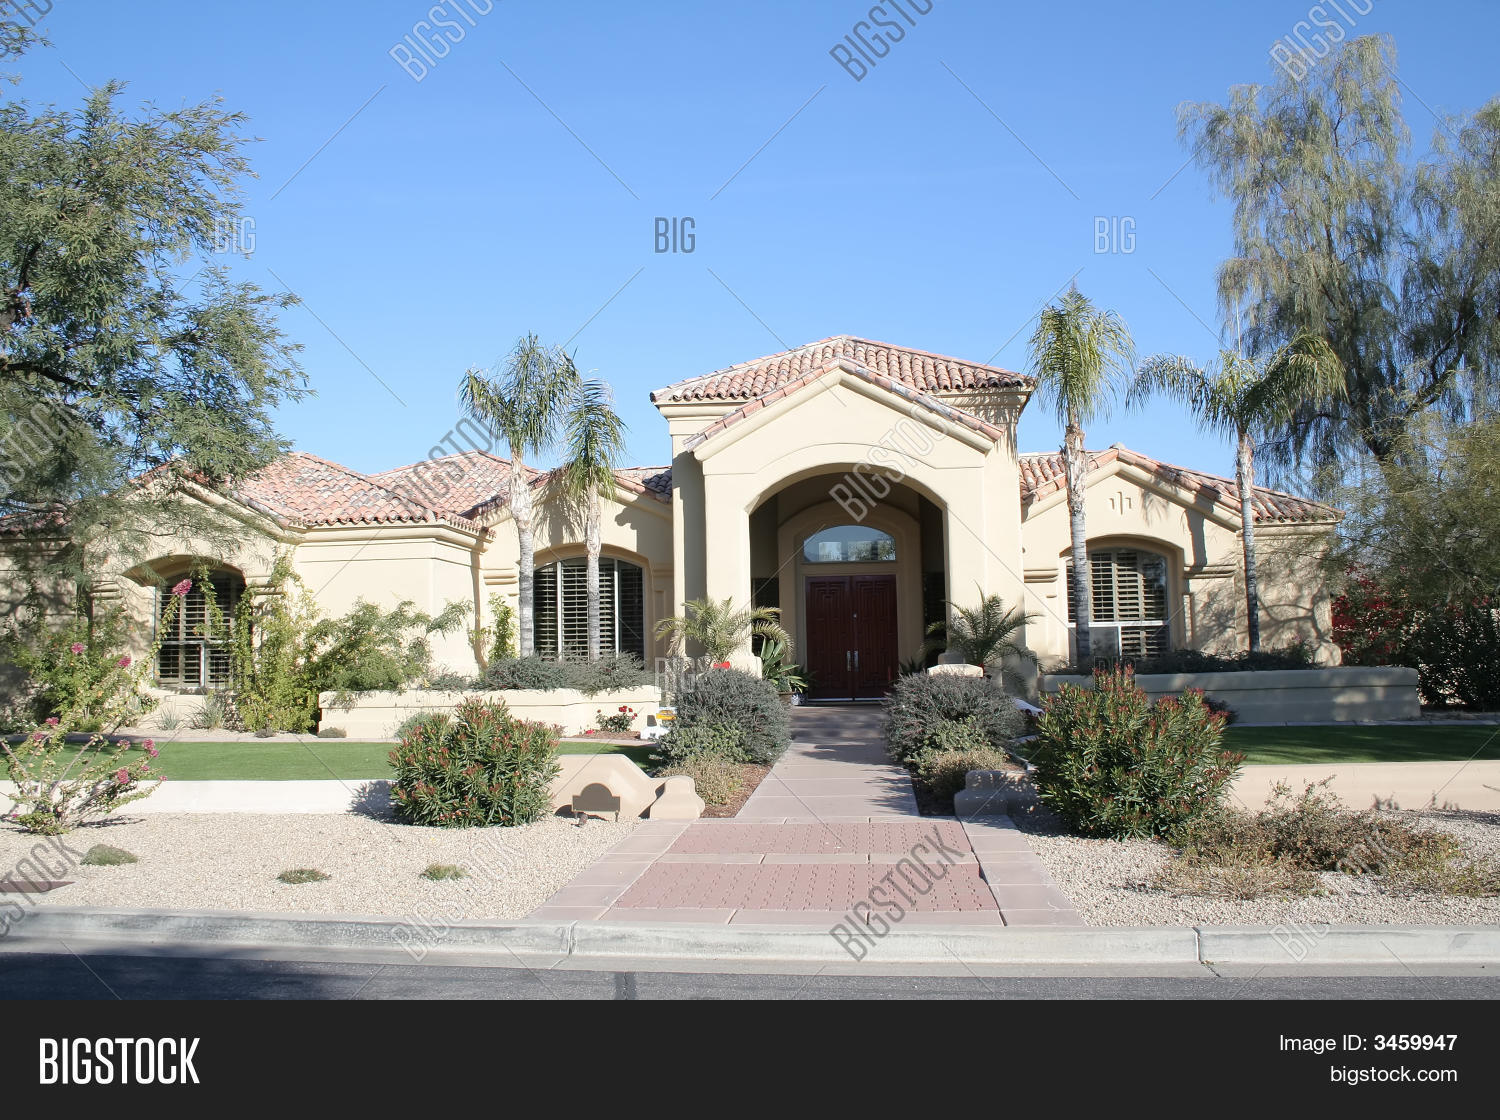 Luxury home image photo bigstock for Home img